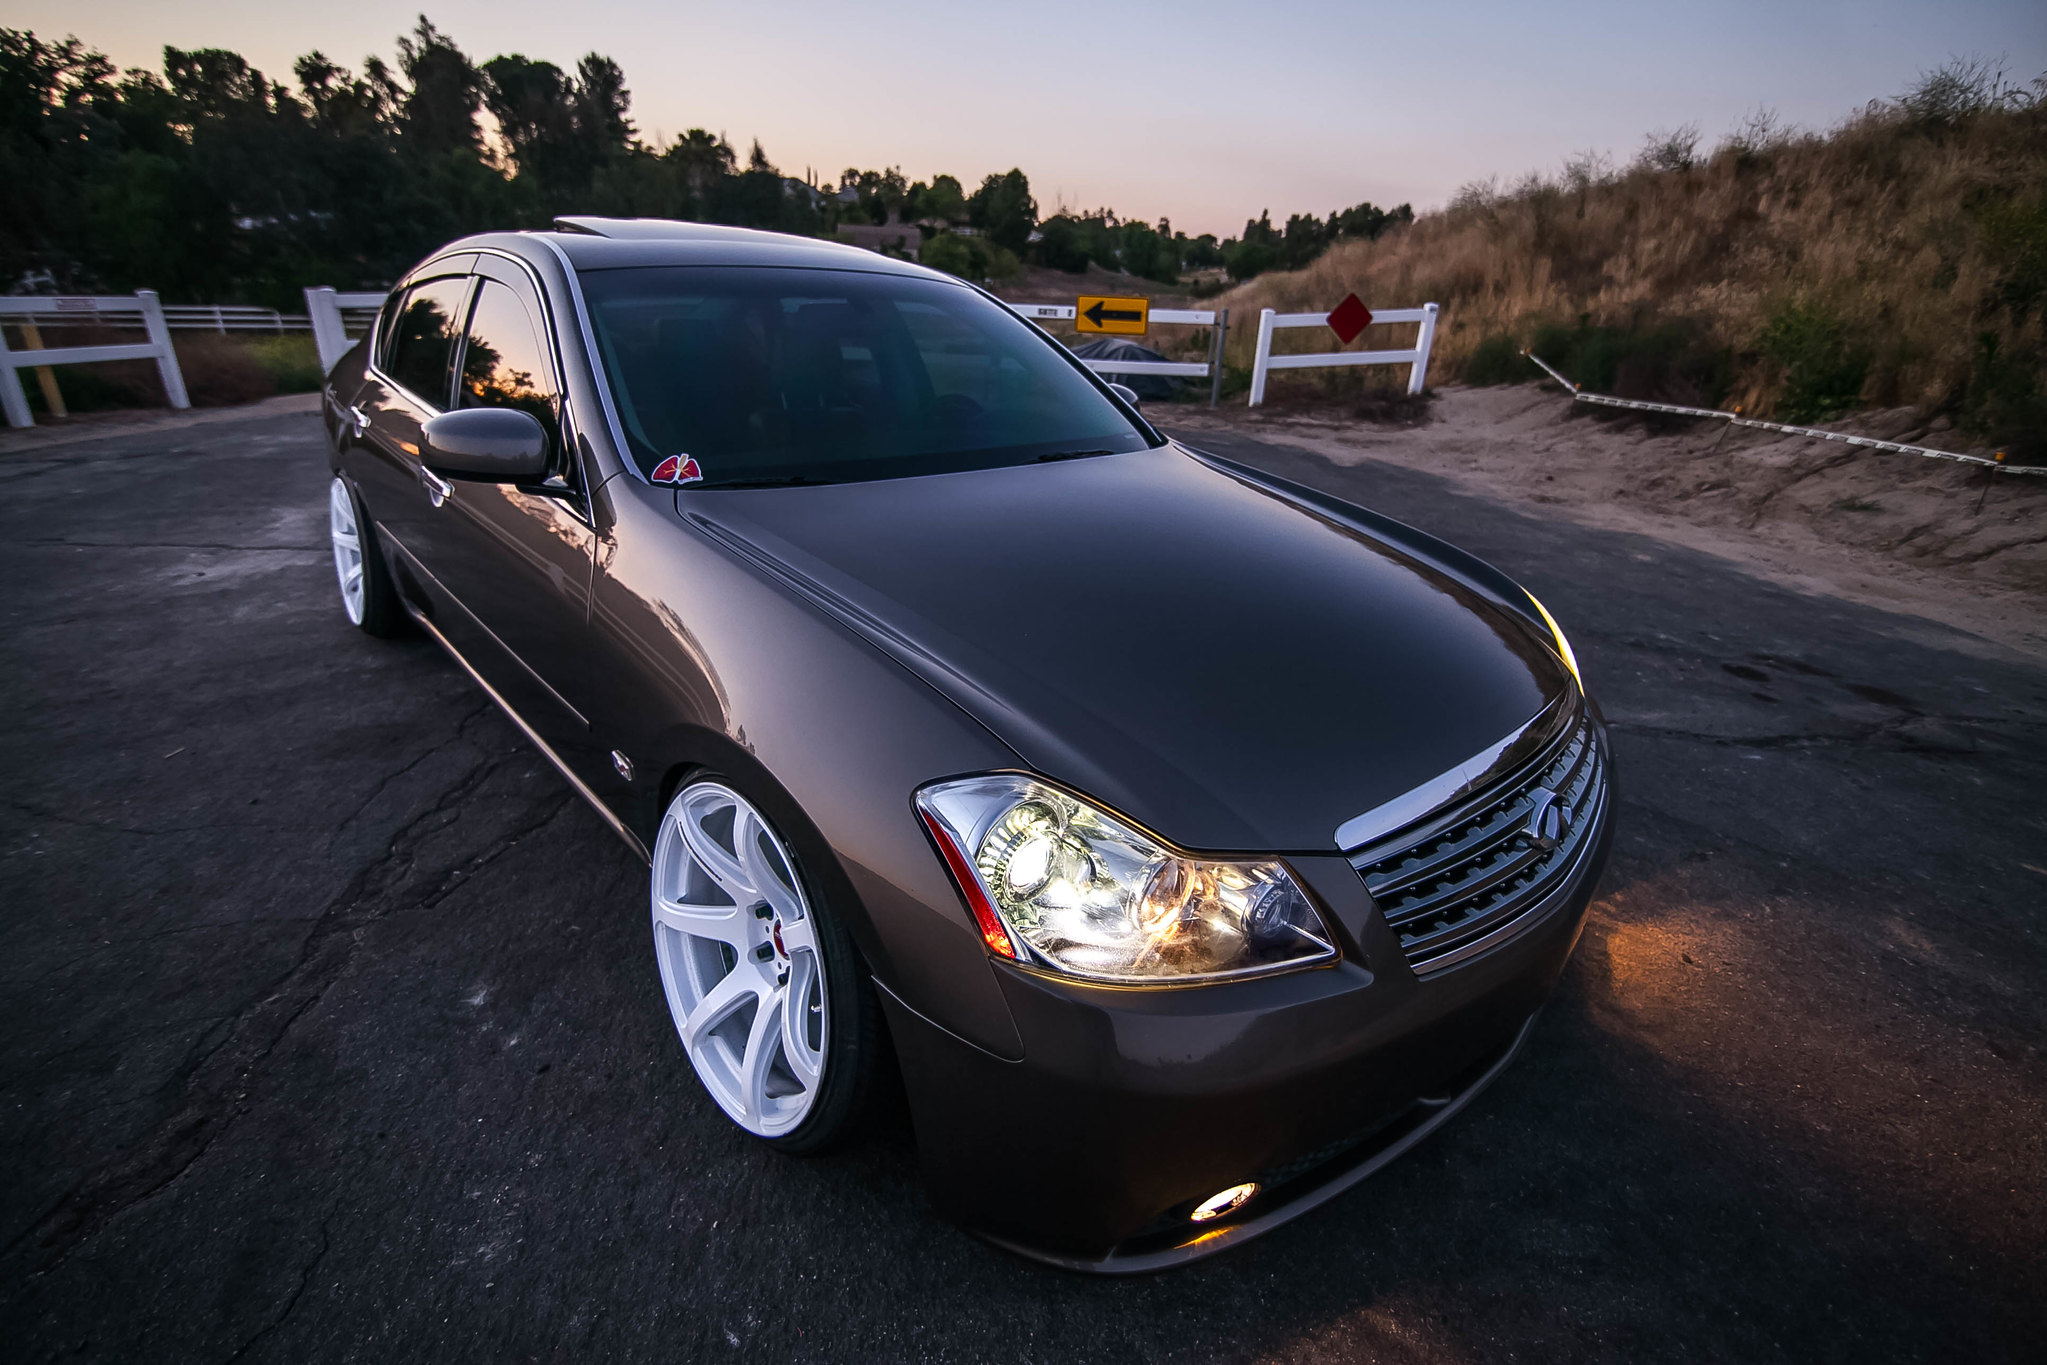 2006 infiniti m45 static so cal nissan forum nissan forums static m45 by bryan boeldt on flickr vanachro Image collections